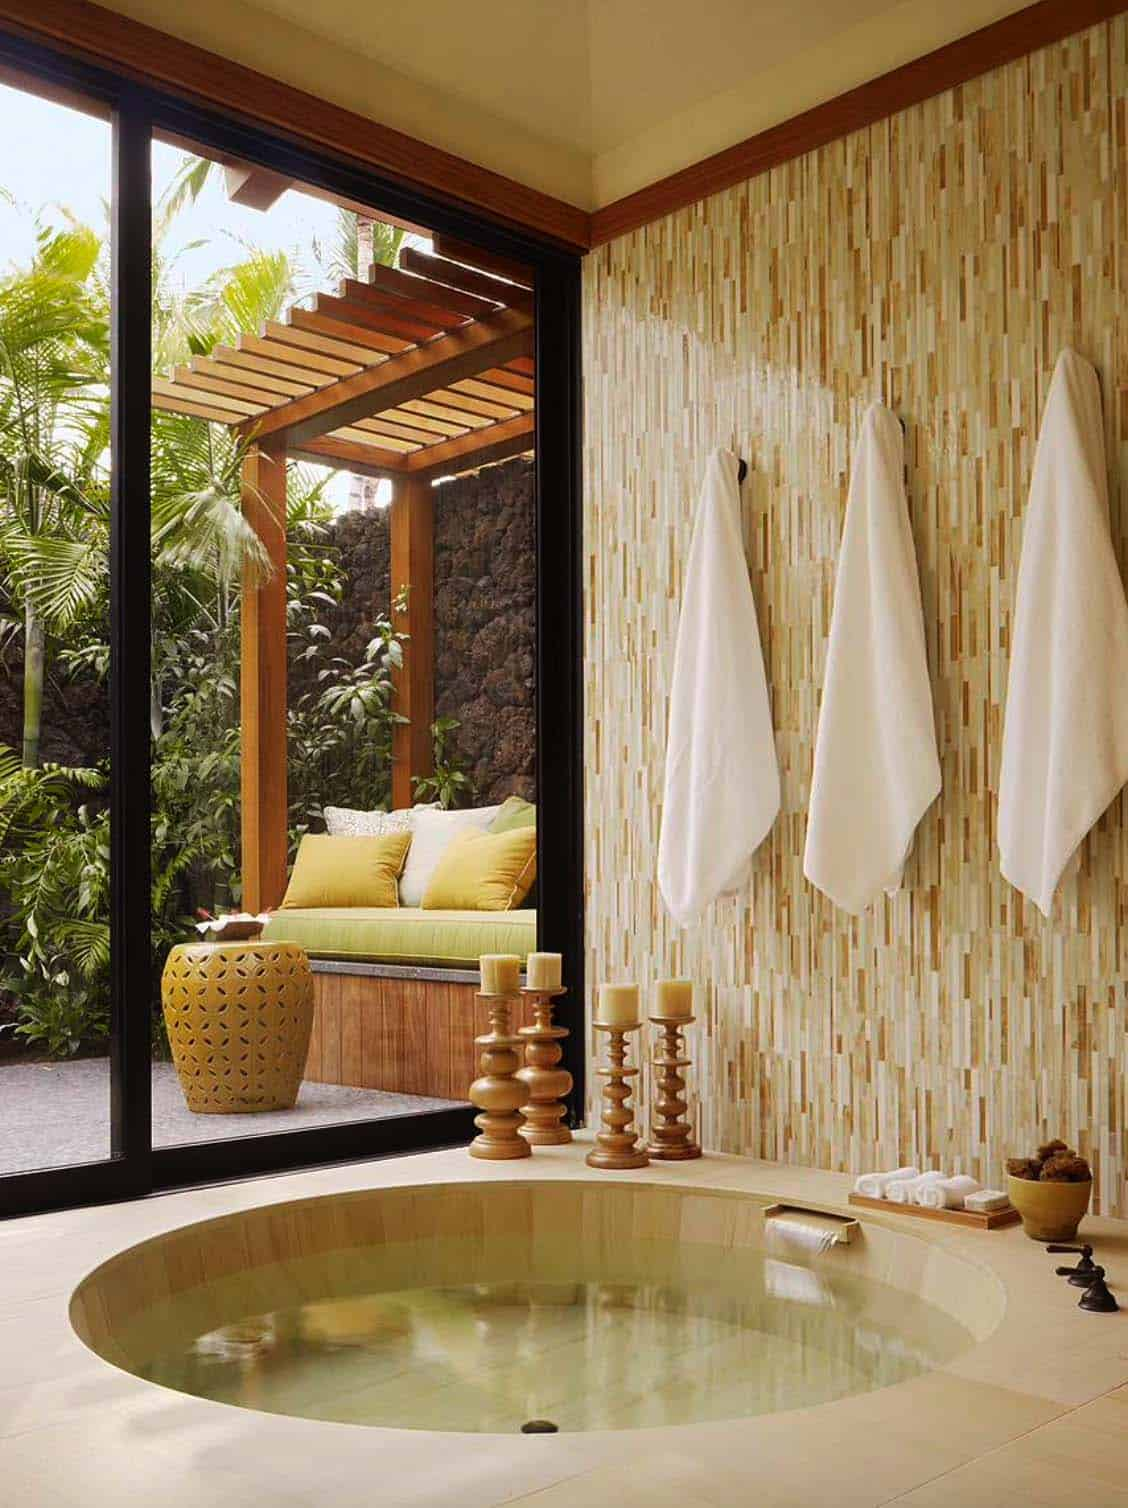 Inspiring Bathrooms Integrating Lush Gardens-18-1 Kindesign